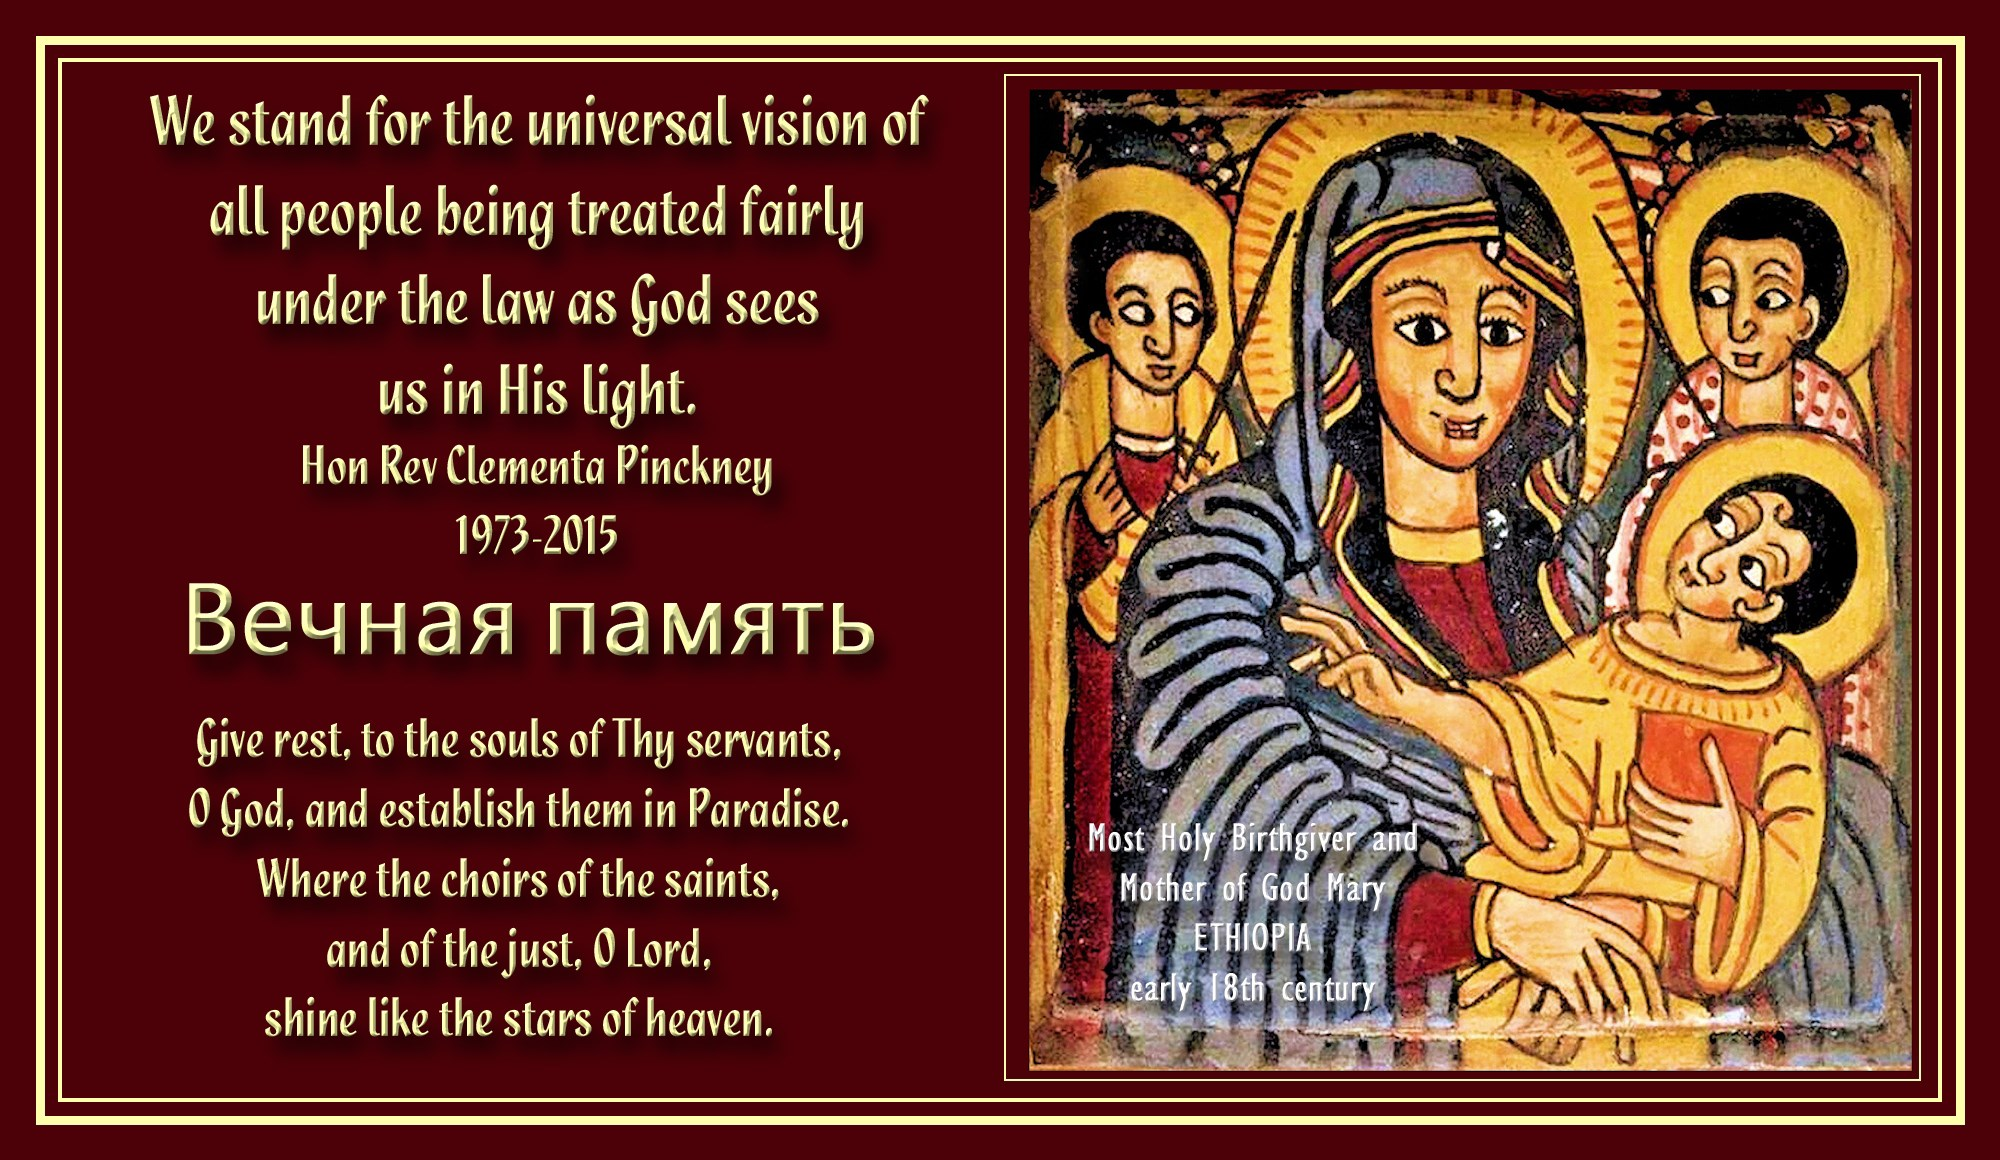 00 Pinckney. Ethiopian icon of the Birthgiver Mary. 260615